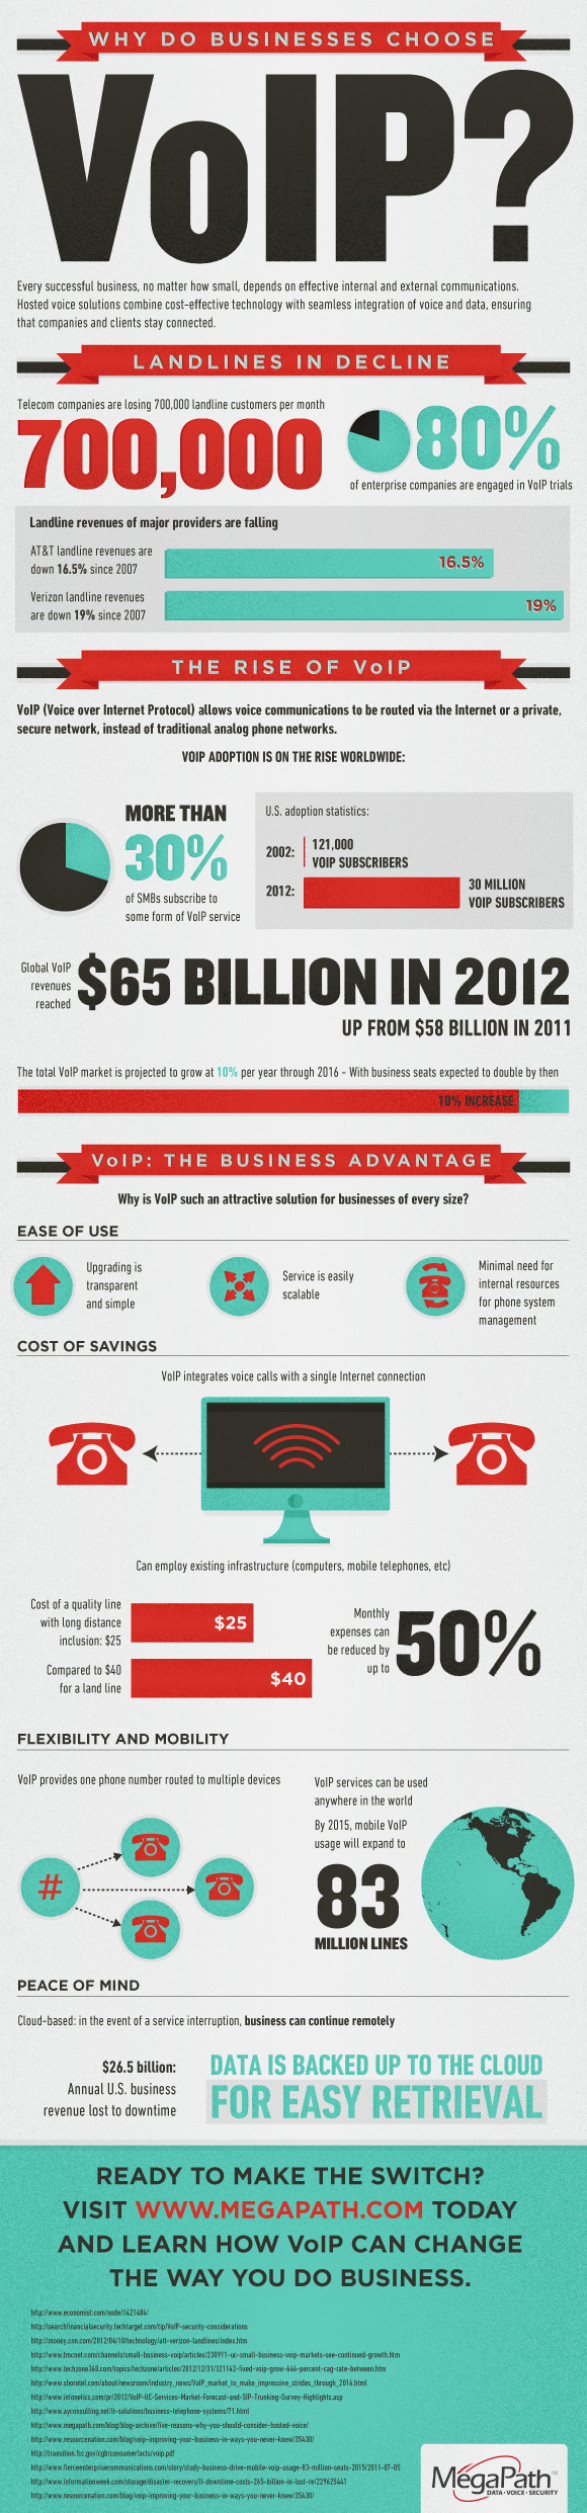 Why Do Businesses Choose VoIP?